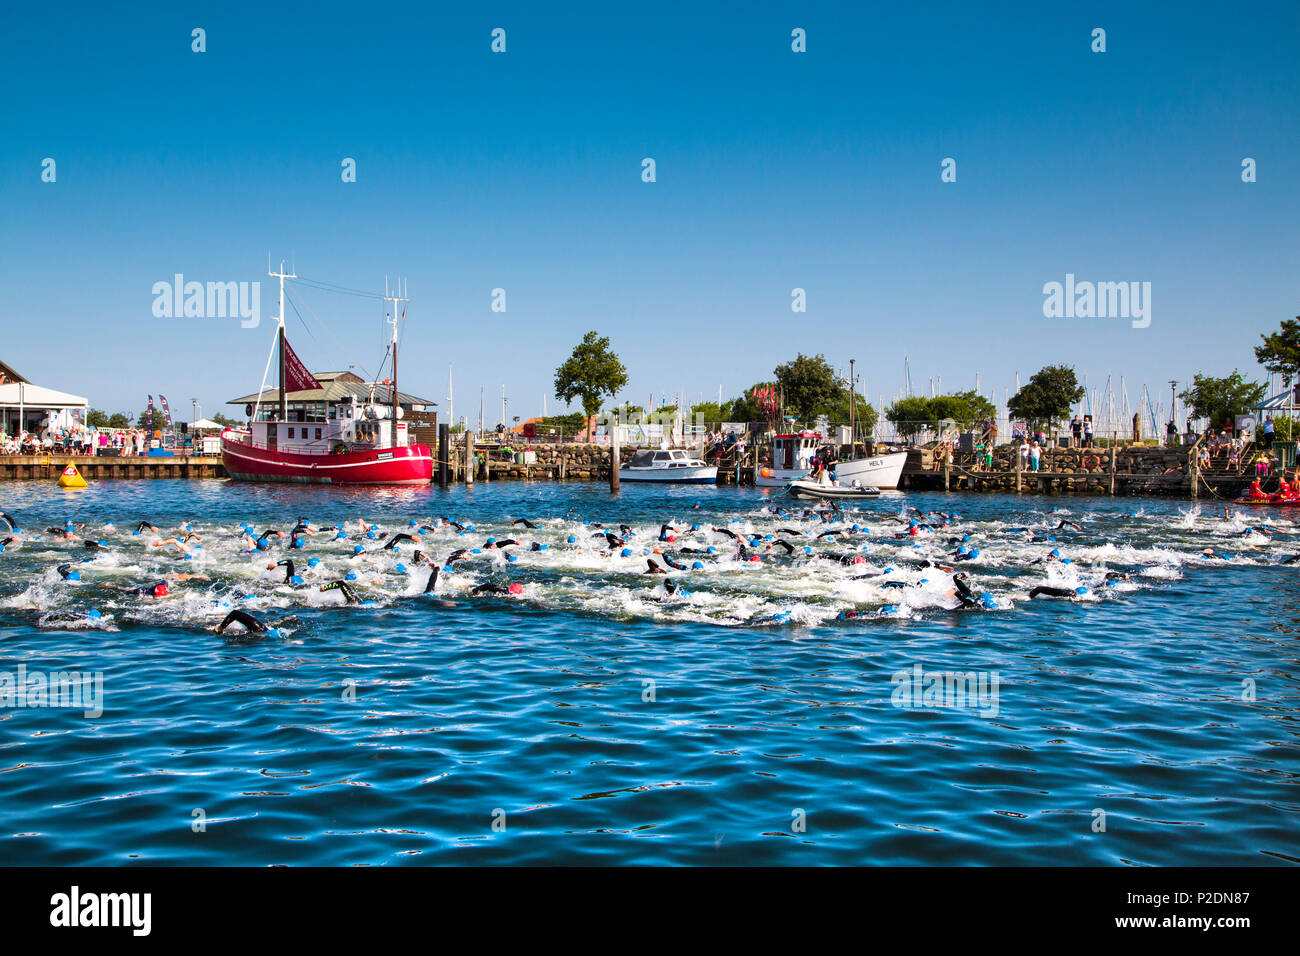 People swimming in the harbour, Triathlon, Heiligenhafen, Baltic Coast, Schleswig-Holstein, Germany - Stock Image